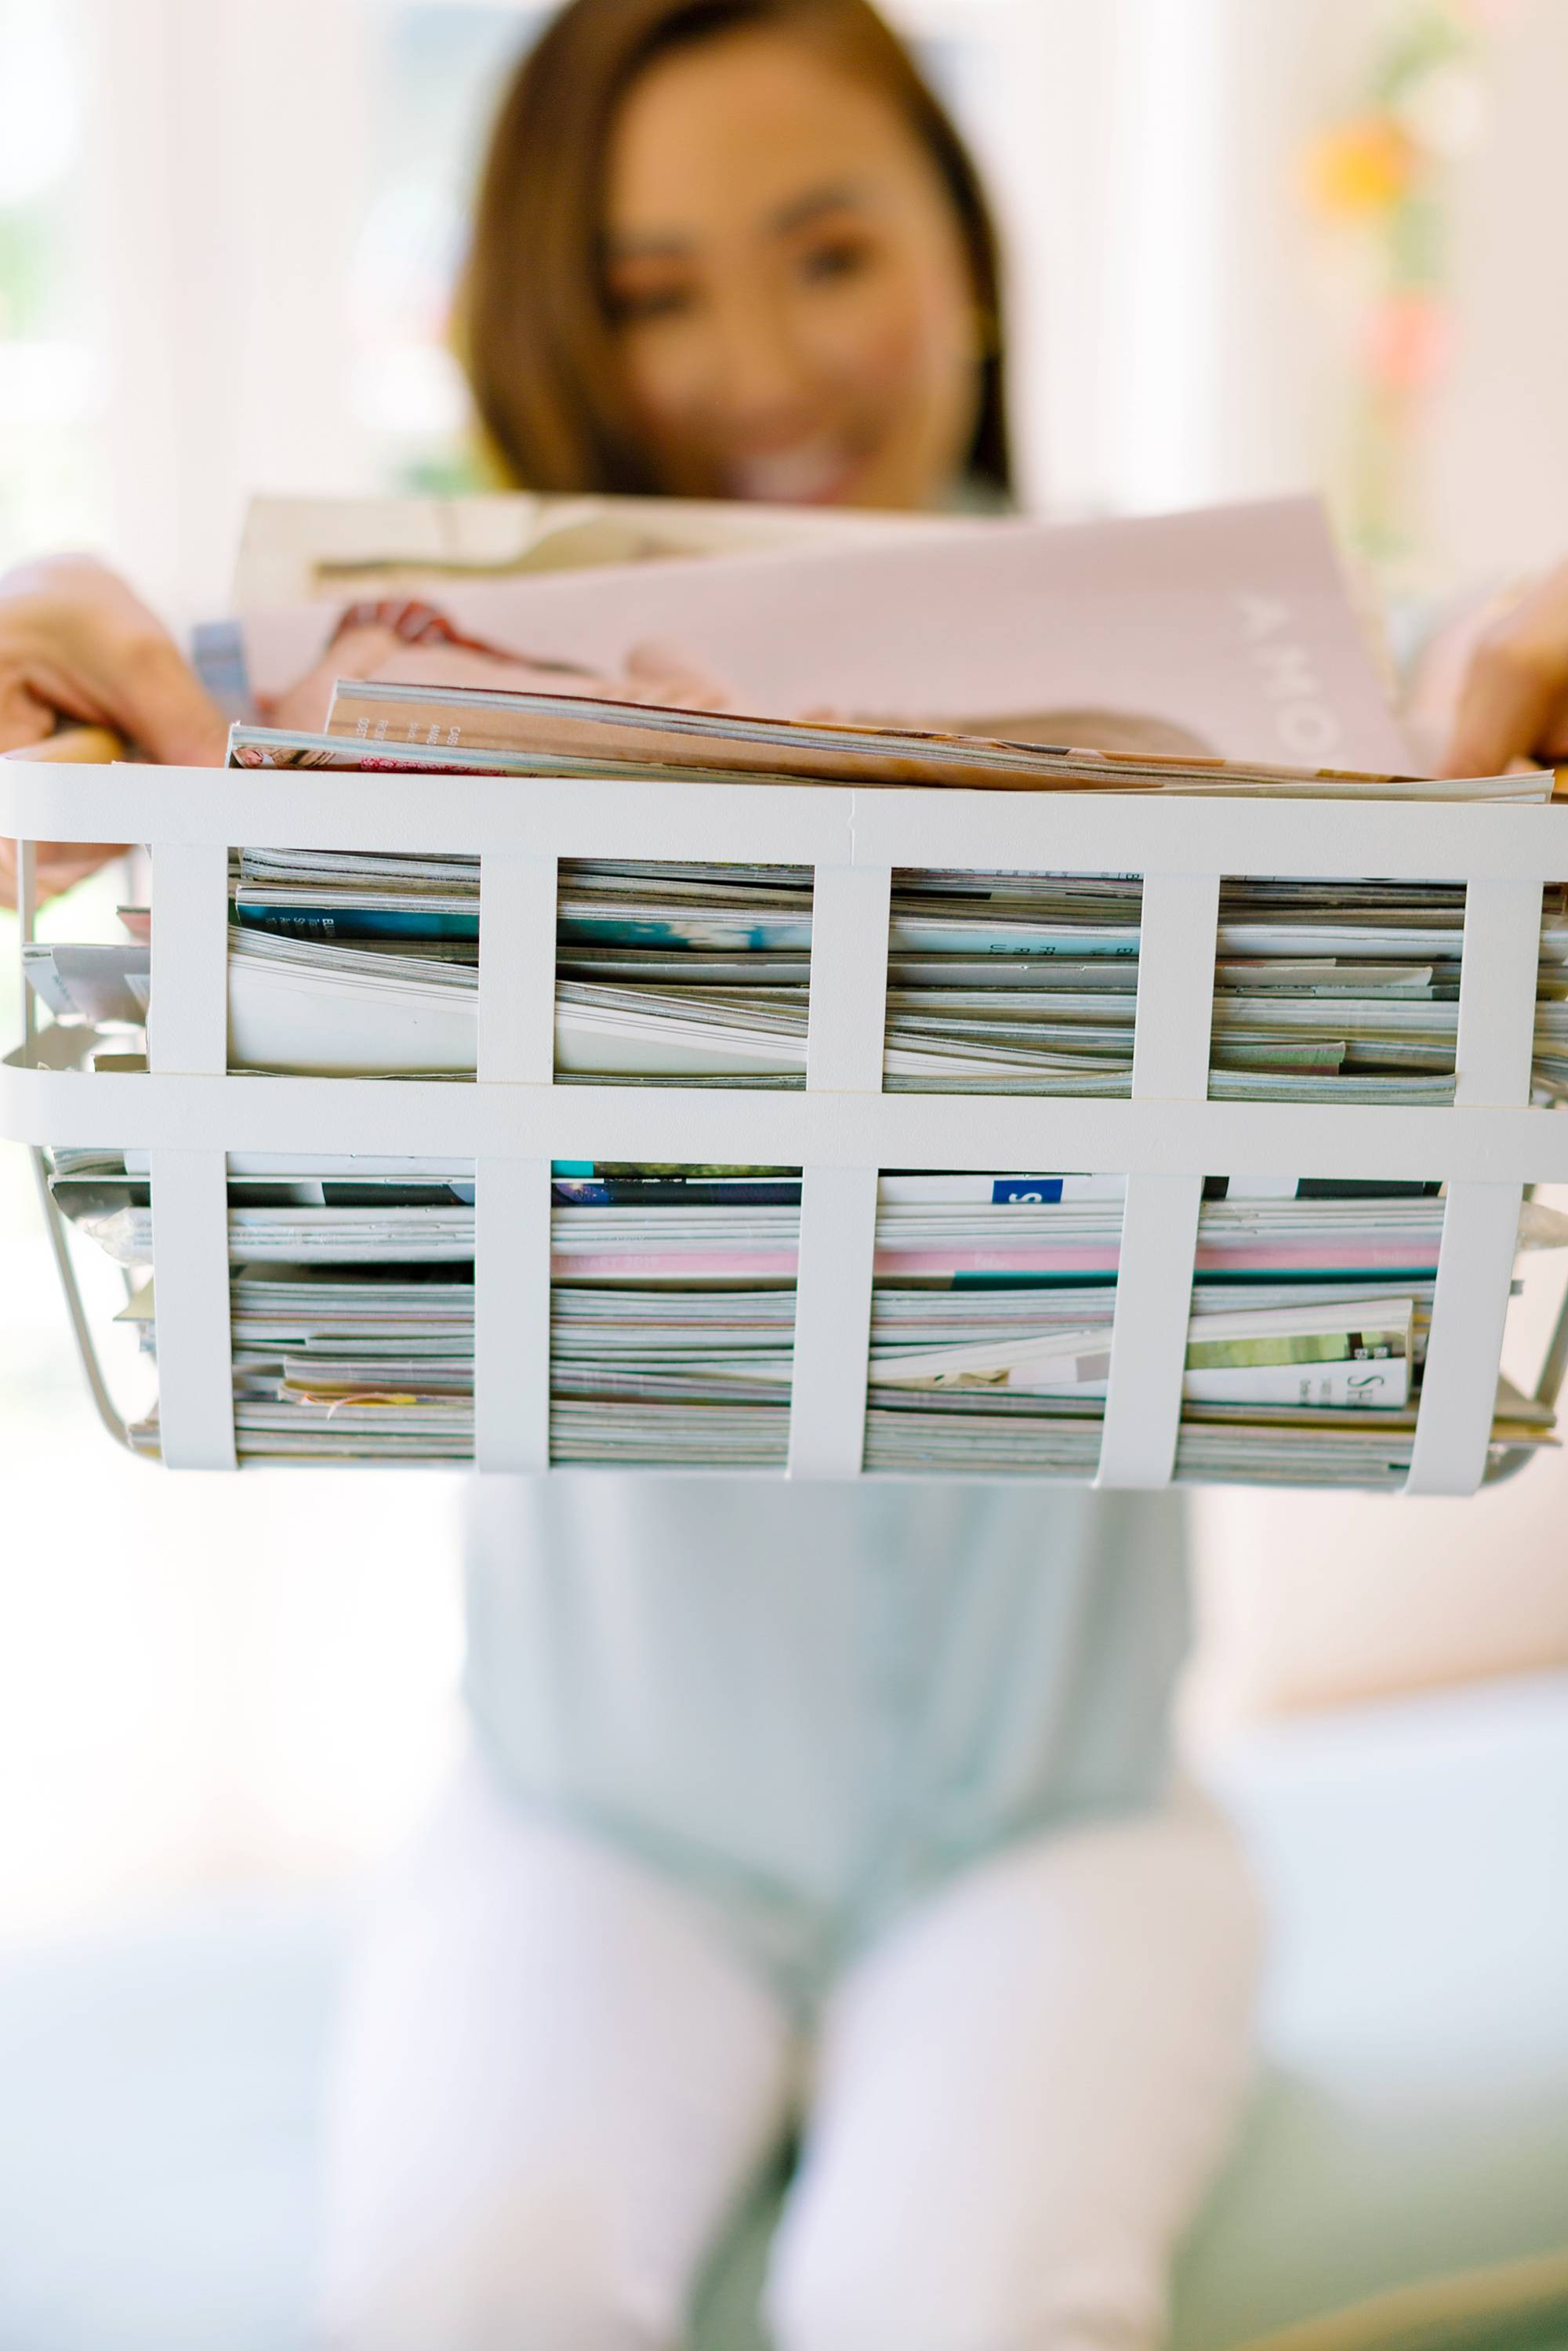 unsubscribe from unwanted catalogs online